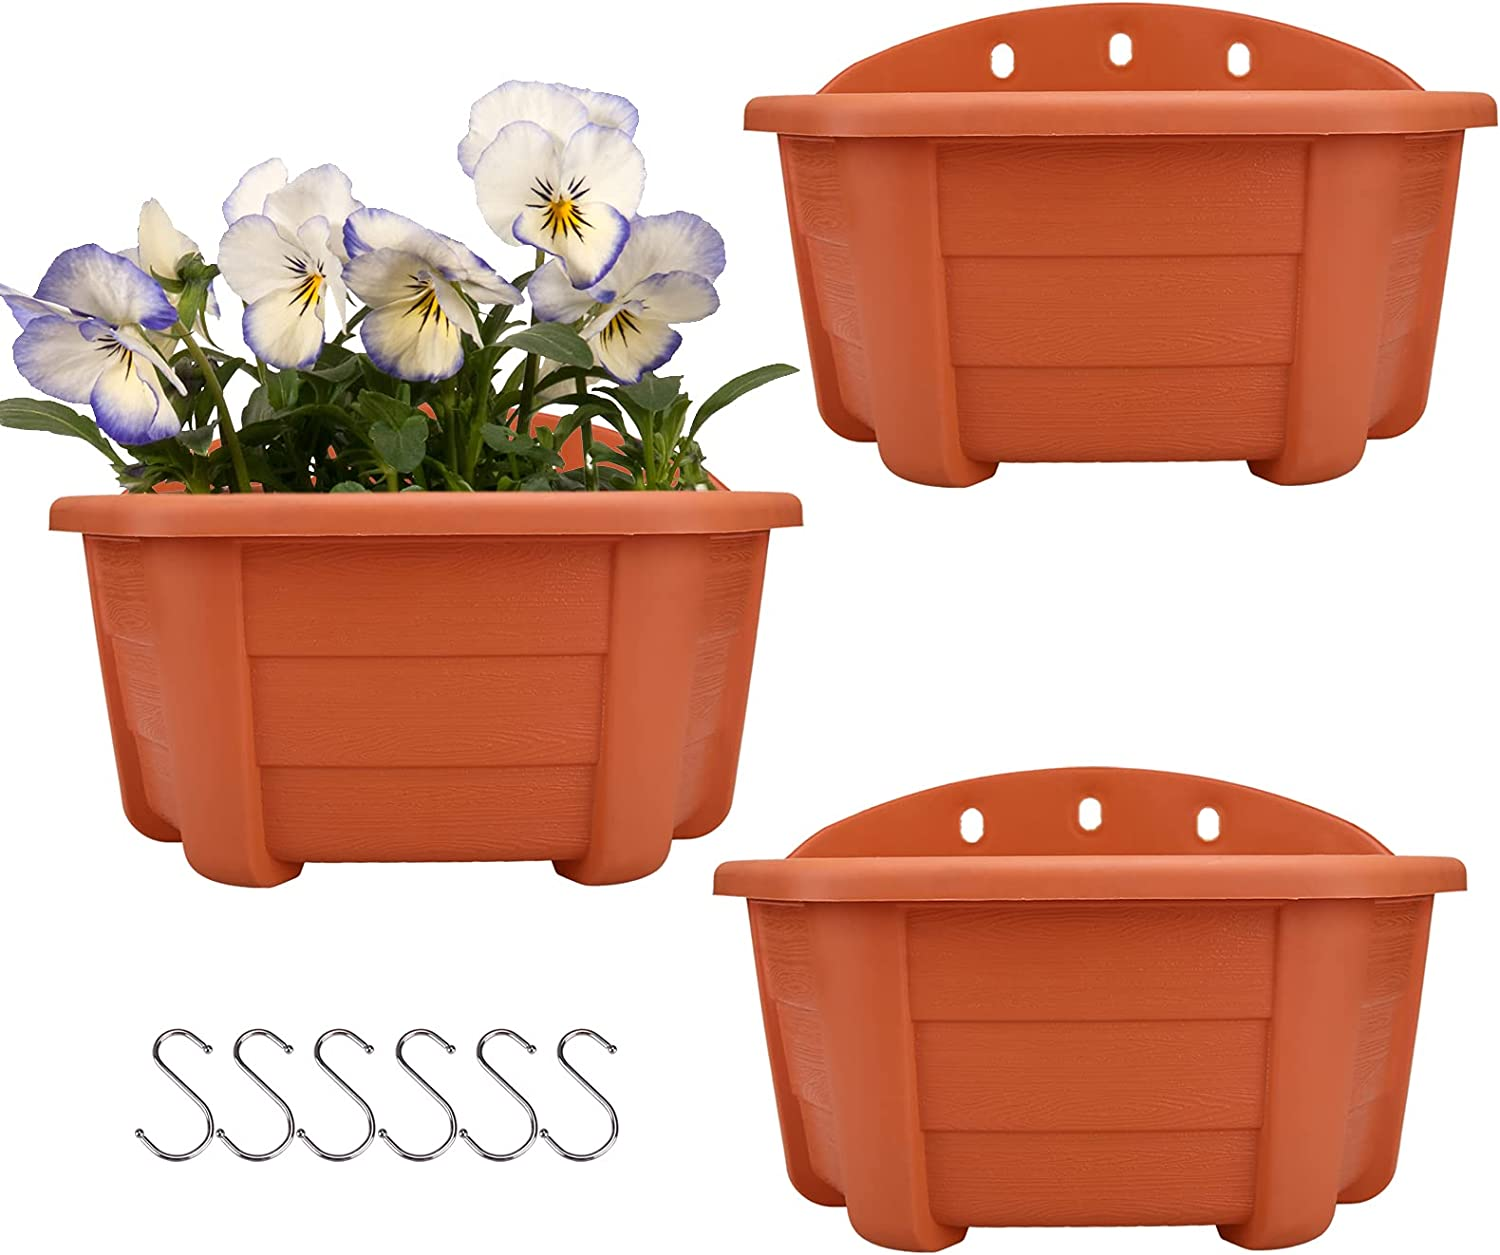 """9.84"""" Wall Hanging Planters Railing Hanging Planters Plants Flowers Plastic Pots Baskets for Balcony Fence Garden Outdoor Indoor 3 Wall Pots(Terracotta red Color)"""